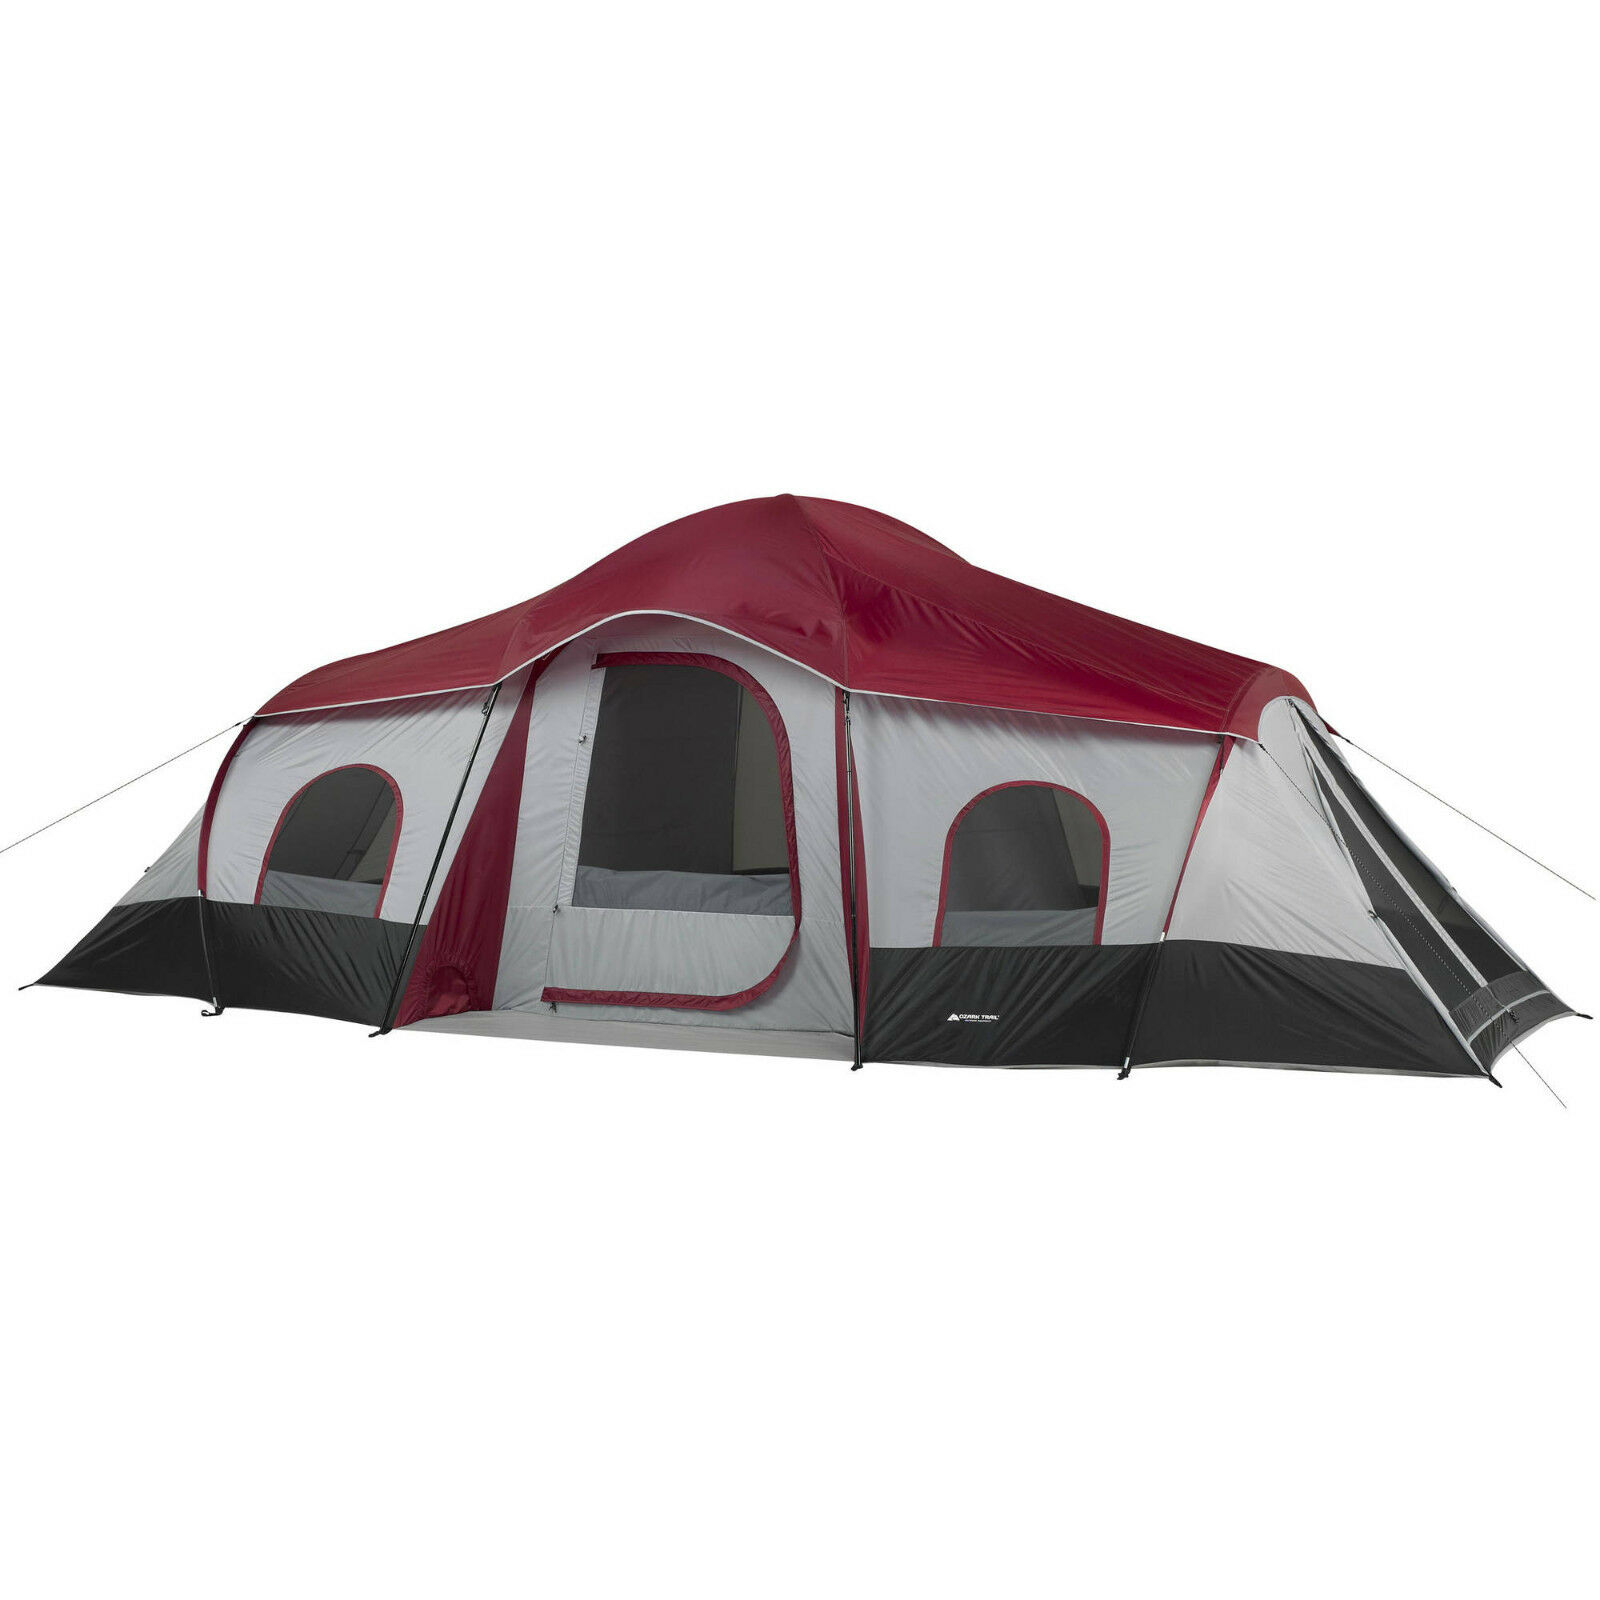 10 Person Camping Tent 3 Room EnLarged Waterproof Outdoor Family Shelter NEW